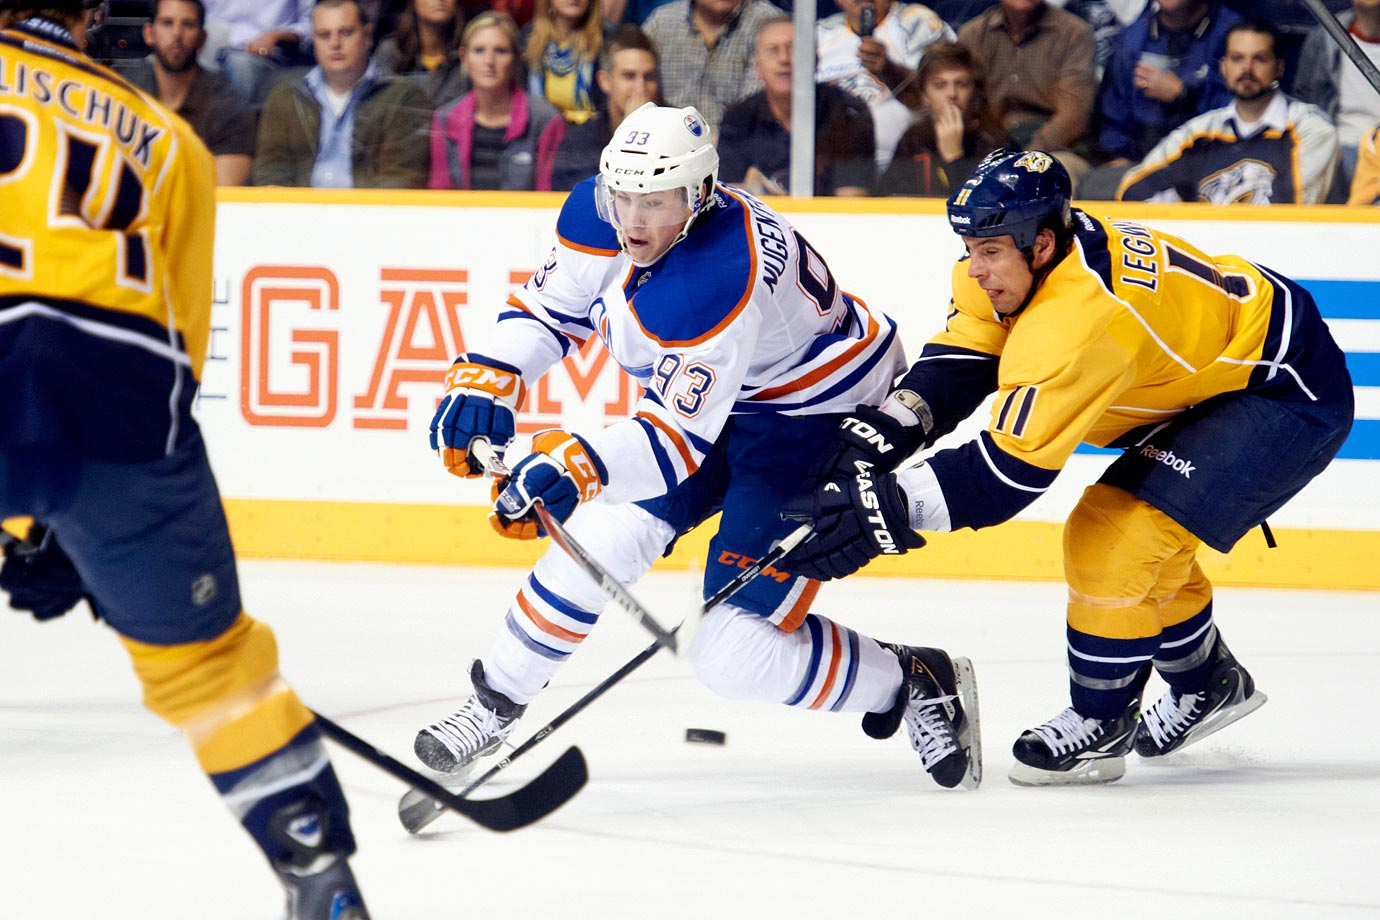 <p>There wasn't much doubt over who the Oilers would take with their second straight No. 1 overall pick. Edmonton took Ryan Nugent-Hopkins, 18, an efficient passing center who had led the WHL with 75 assists. He was teamed with LW Taylor Hall, the No. 1 pick in 2010, to make what the Oilers expected would become a formidable young attacking duo. Since a promising rookie season, Nugent-Hopkins has not progressed though. — Notable picks: No. 2: Gabriel Landeskog, LW, Colorado Avalanche | No. 3: Jonathan Huberdeau, C, Florida Panthers | No. 43: Brandon Saad, LW, Chicago Blackhawks | No. 208: Ondrej Palat, LW, Tampa Bay Lightning</p>